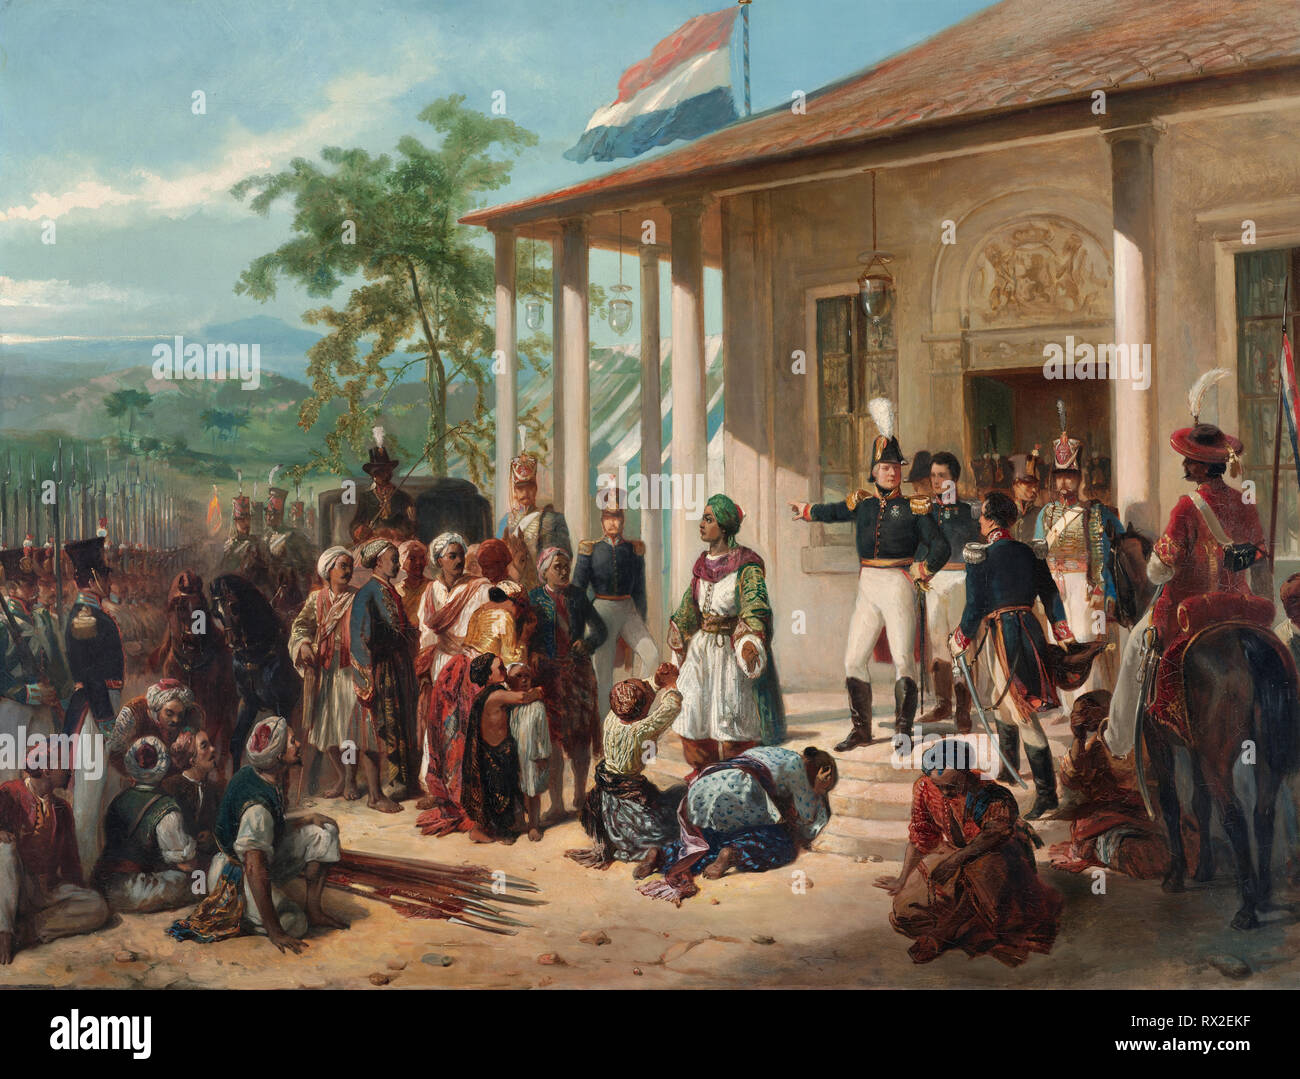 The Arrest of Diepo Negoro by Lieutenant-General Baron De Kock, 28 March 1830, which ended the Java War (1825-1830) - Nicolaas Pieneman, 1835 - Stock Image